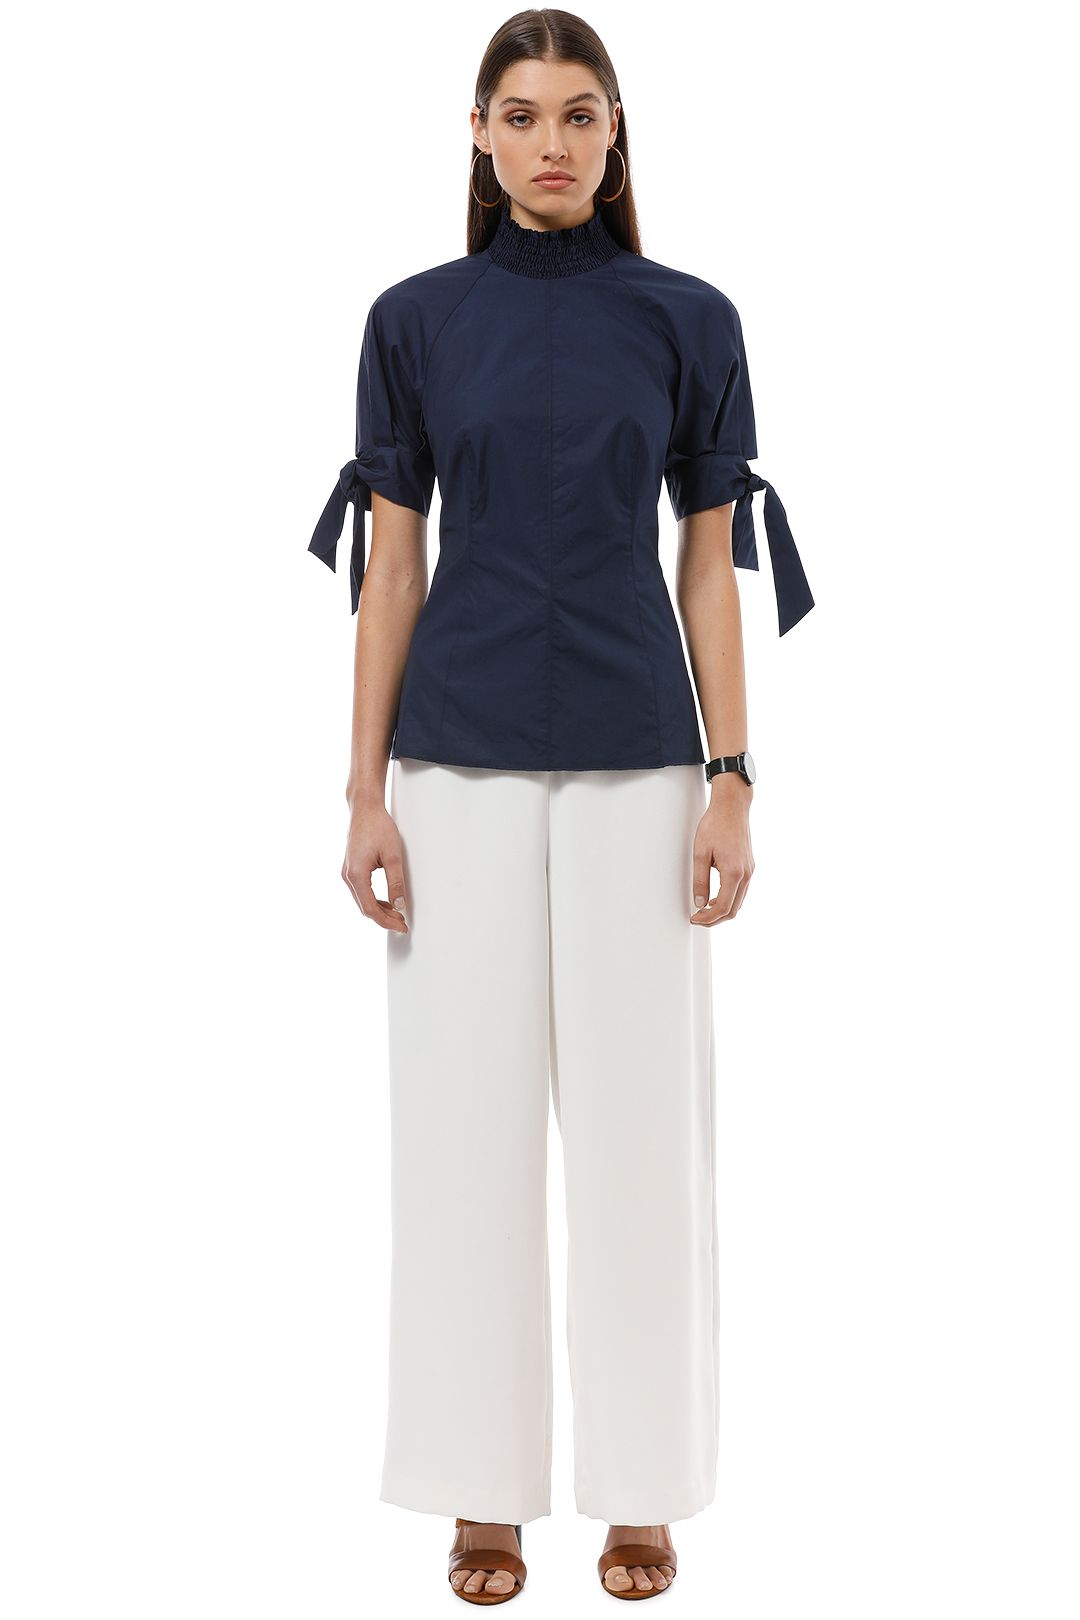 Camilla and Marc - Giralda Top - Blue - Front